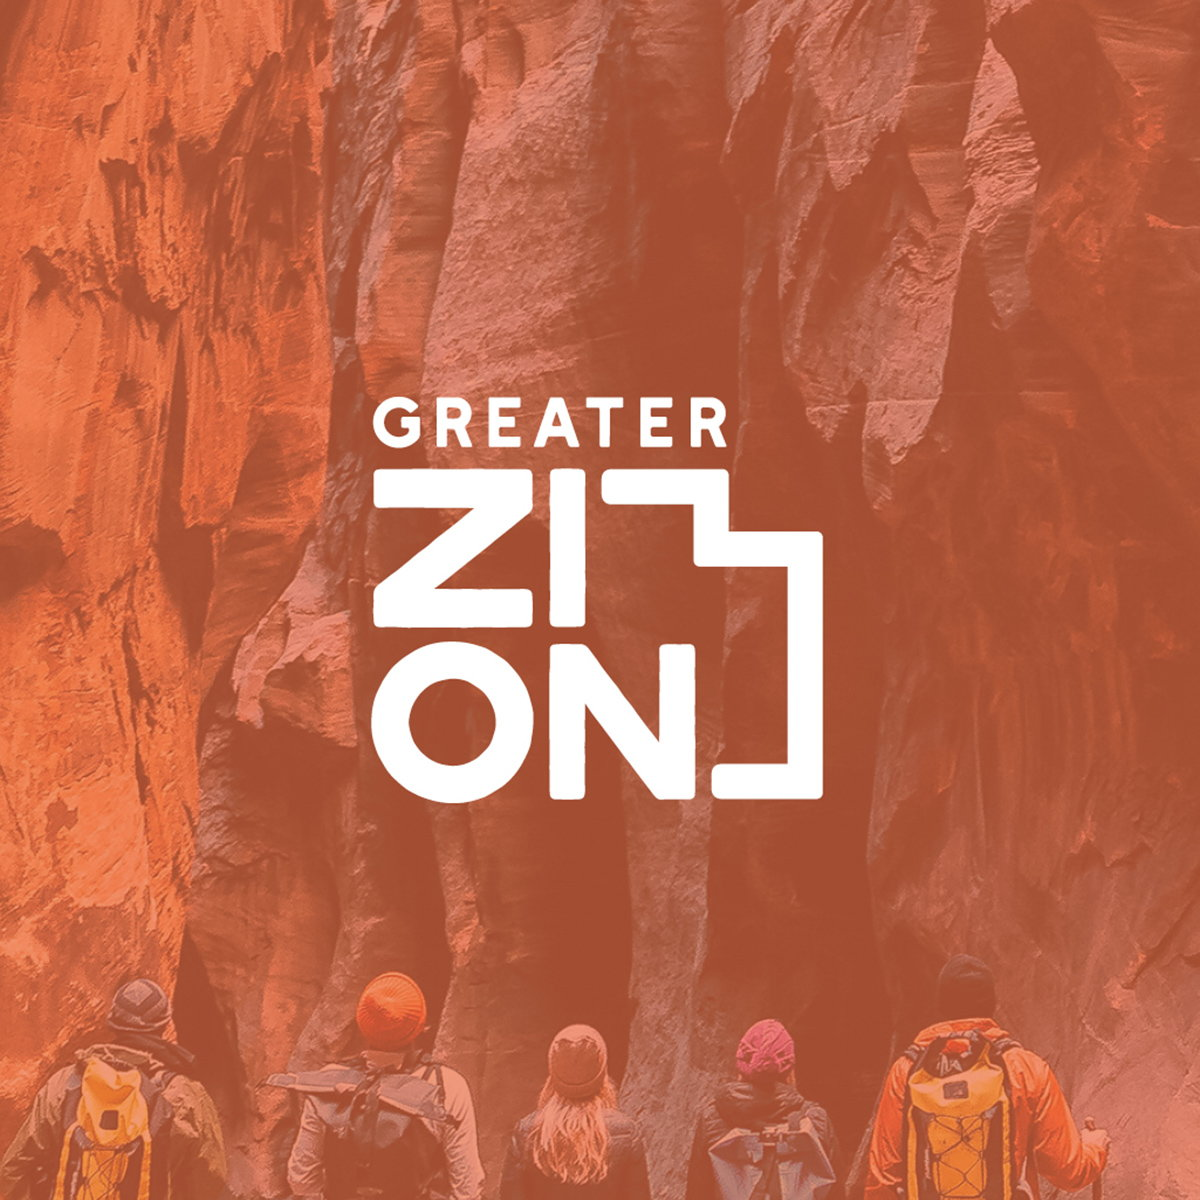 Cactus Unveils 'Greater Zion' Branding Project